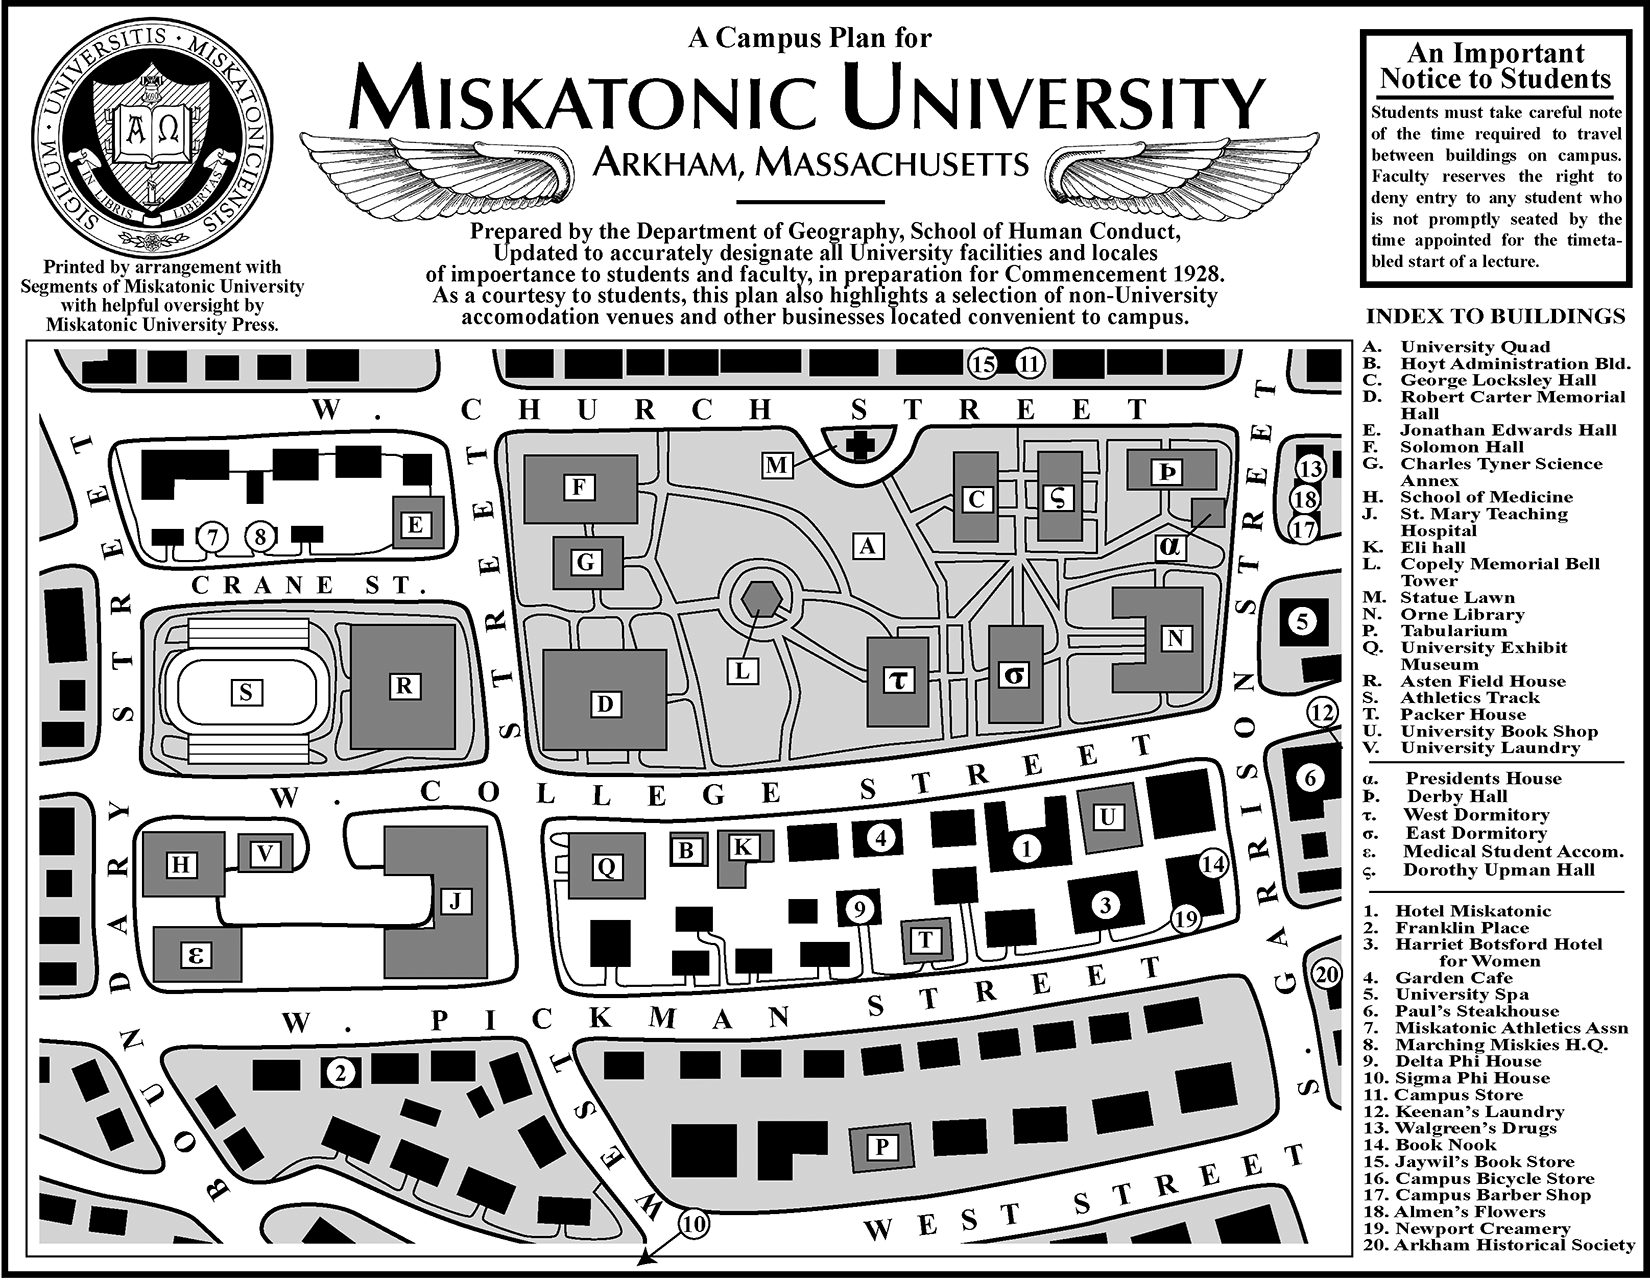 Miskatonic University Campus Map by MichaelArkAngel in 2019 ... on sweet briar campus map, texas lutheran campus map, stanford campus map, delta state campus map, north lamar campus map, william carey campus map, george mason campus map, chico state campus map, cardinal newman campus map, trinity campus map, pittsburg state campus map, upper iowa campus map, university of texas campus map, baylor campus map,